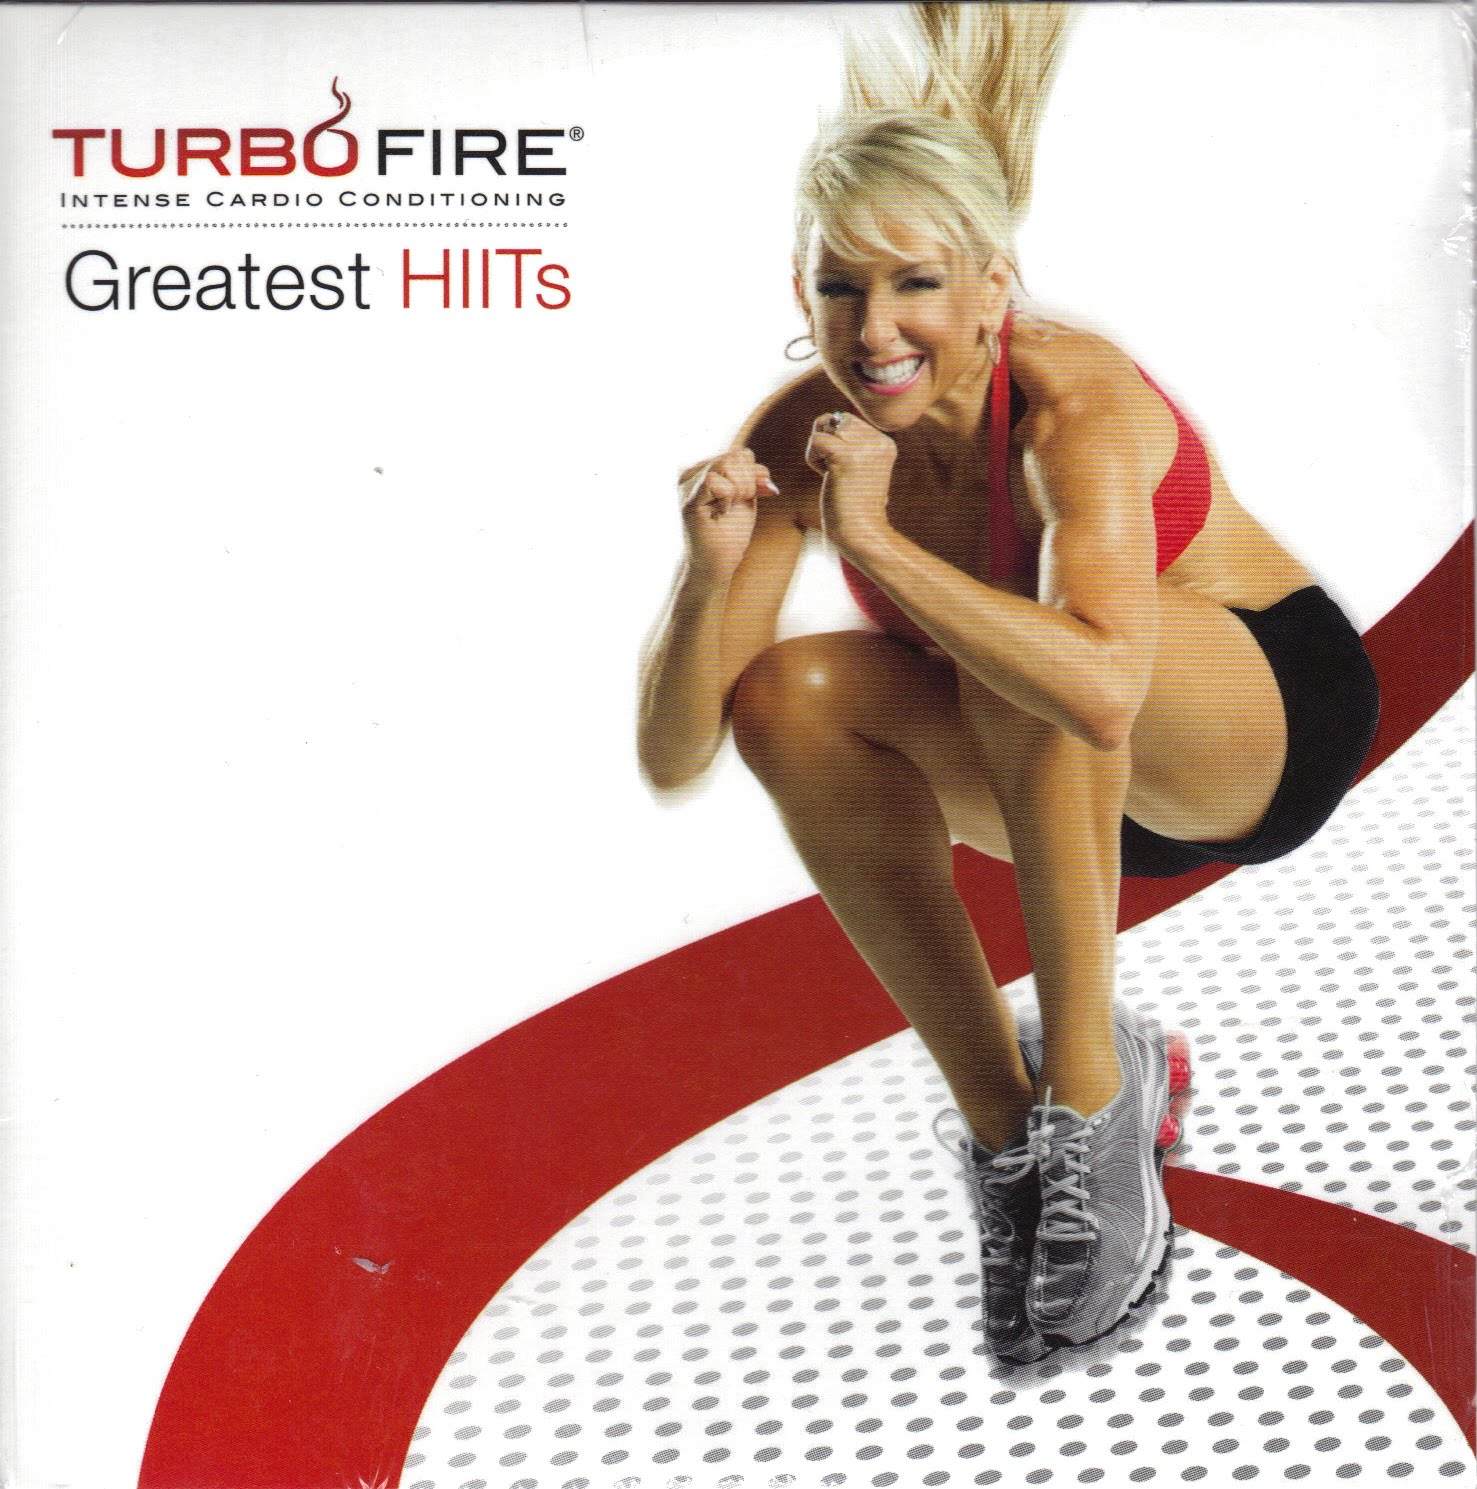 Turbo Fire Advanced Workout Schedule So turbo fire greatest hiits